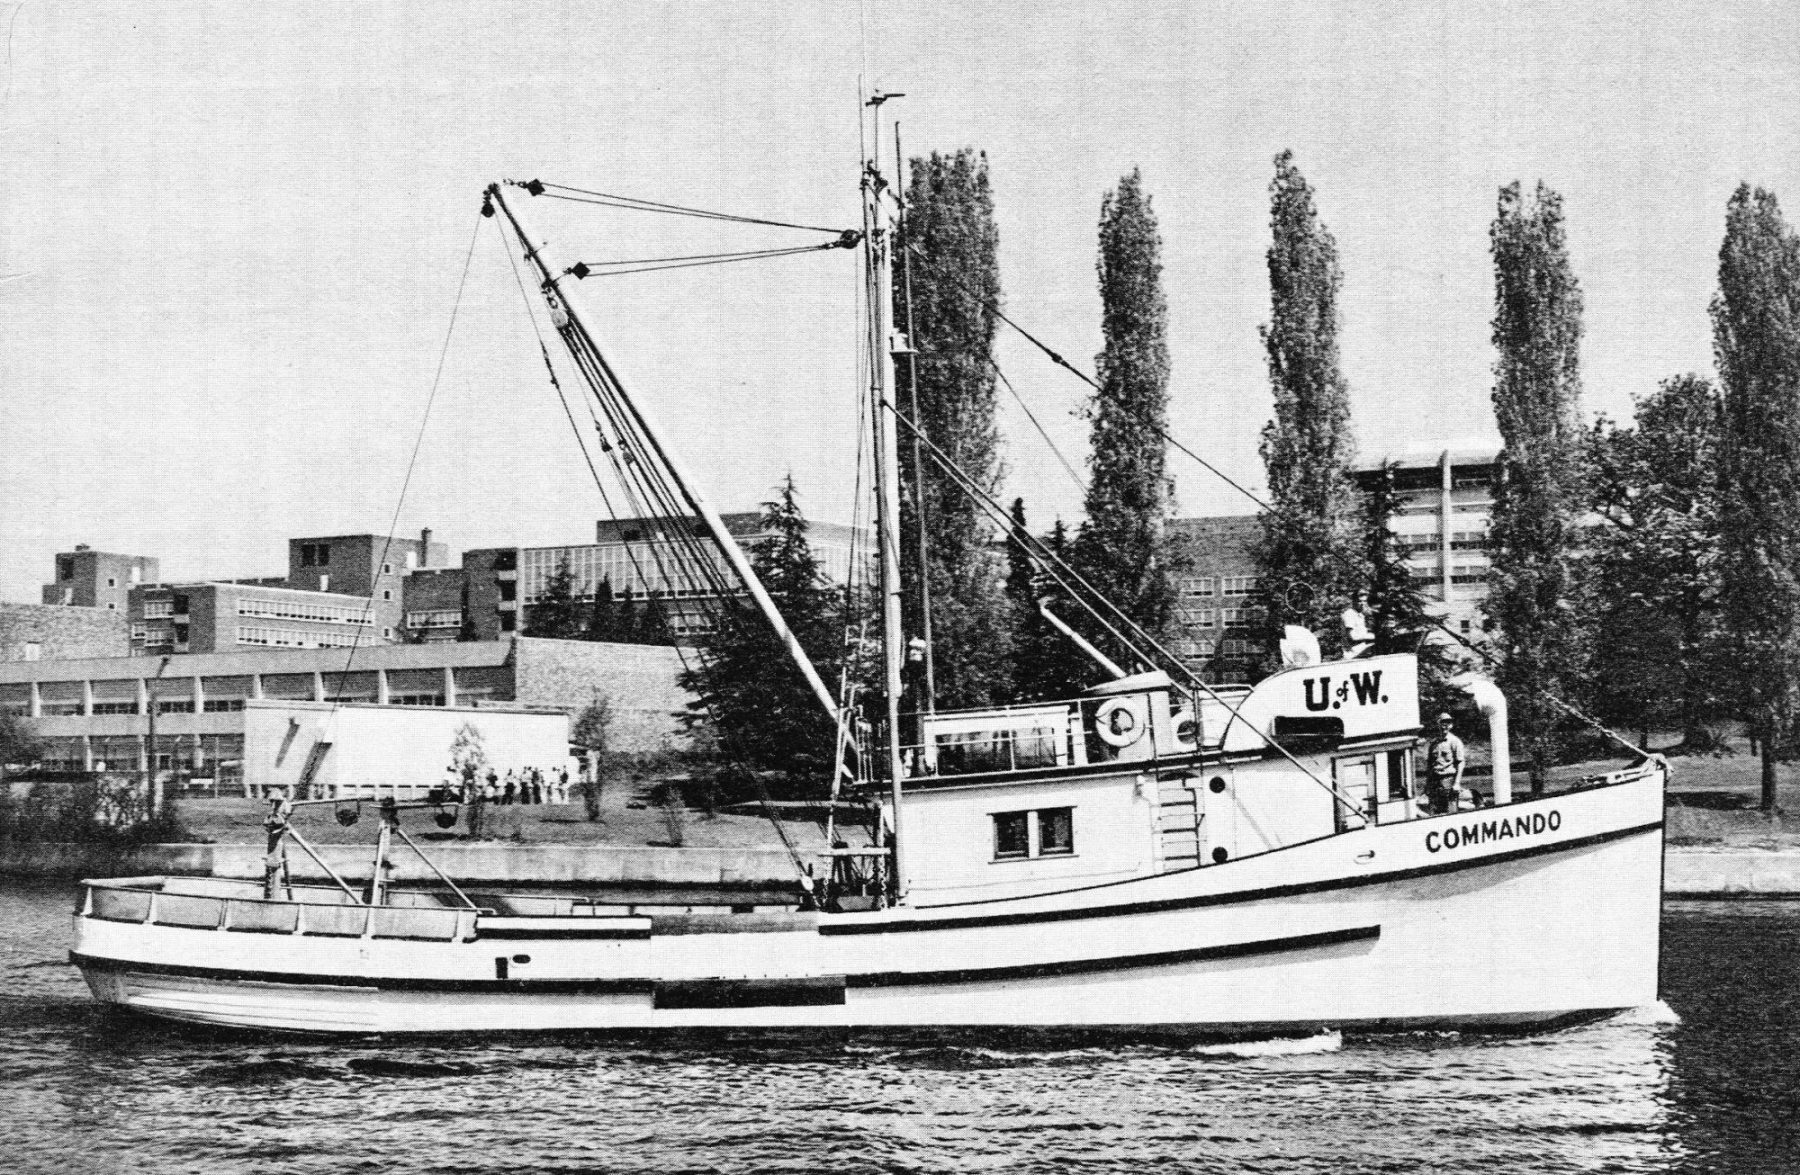 Archive image of the R/V Commando as it passes through the Montlake Cut